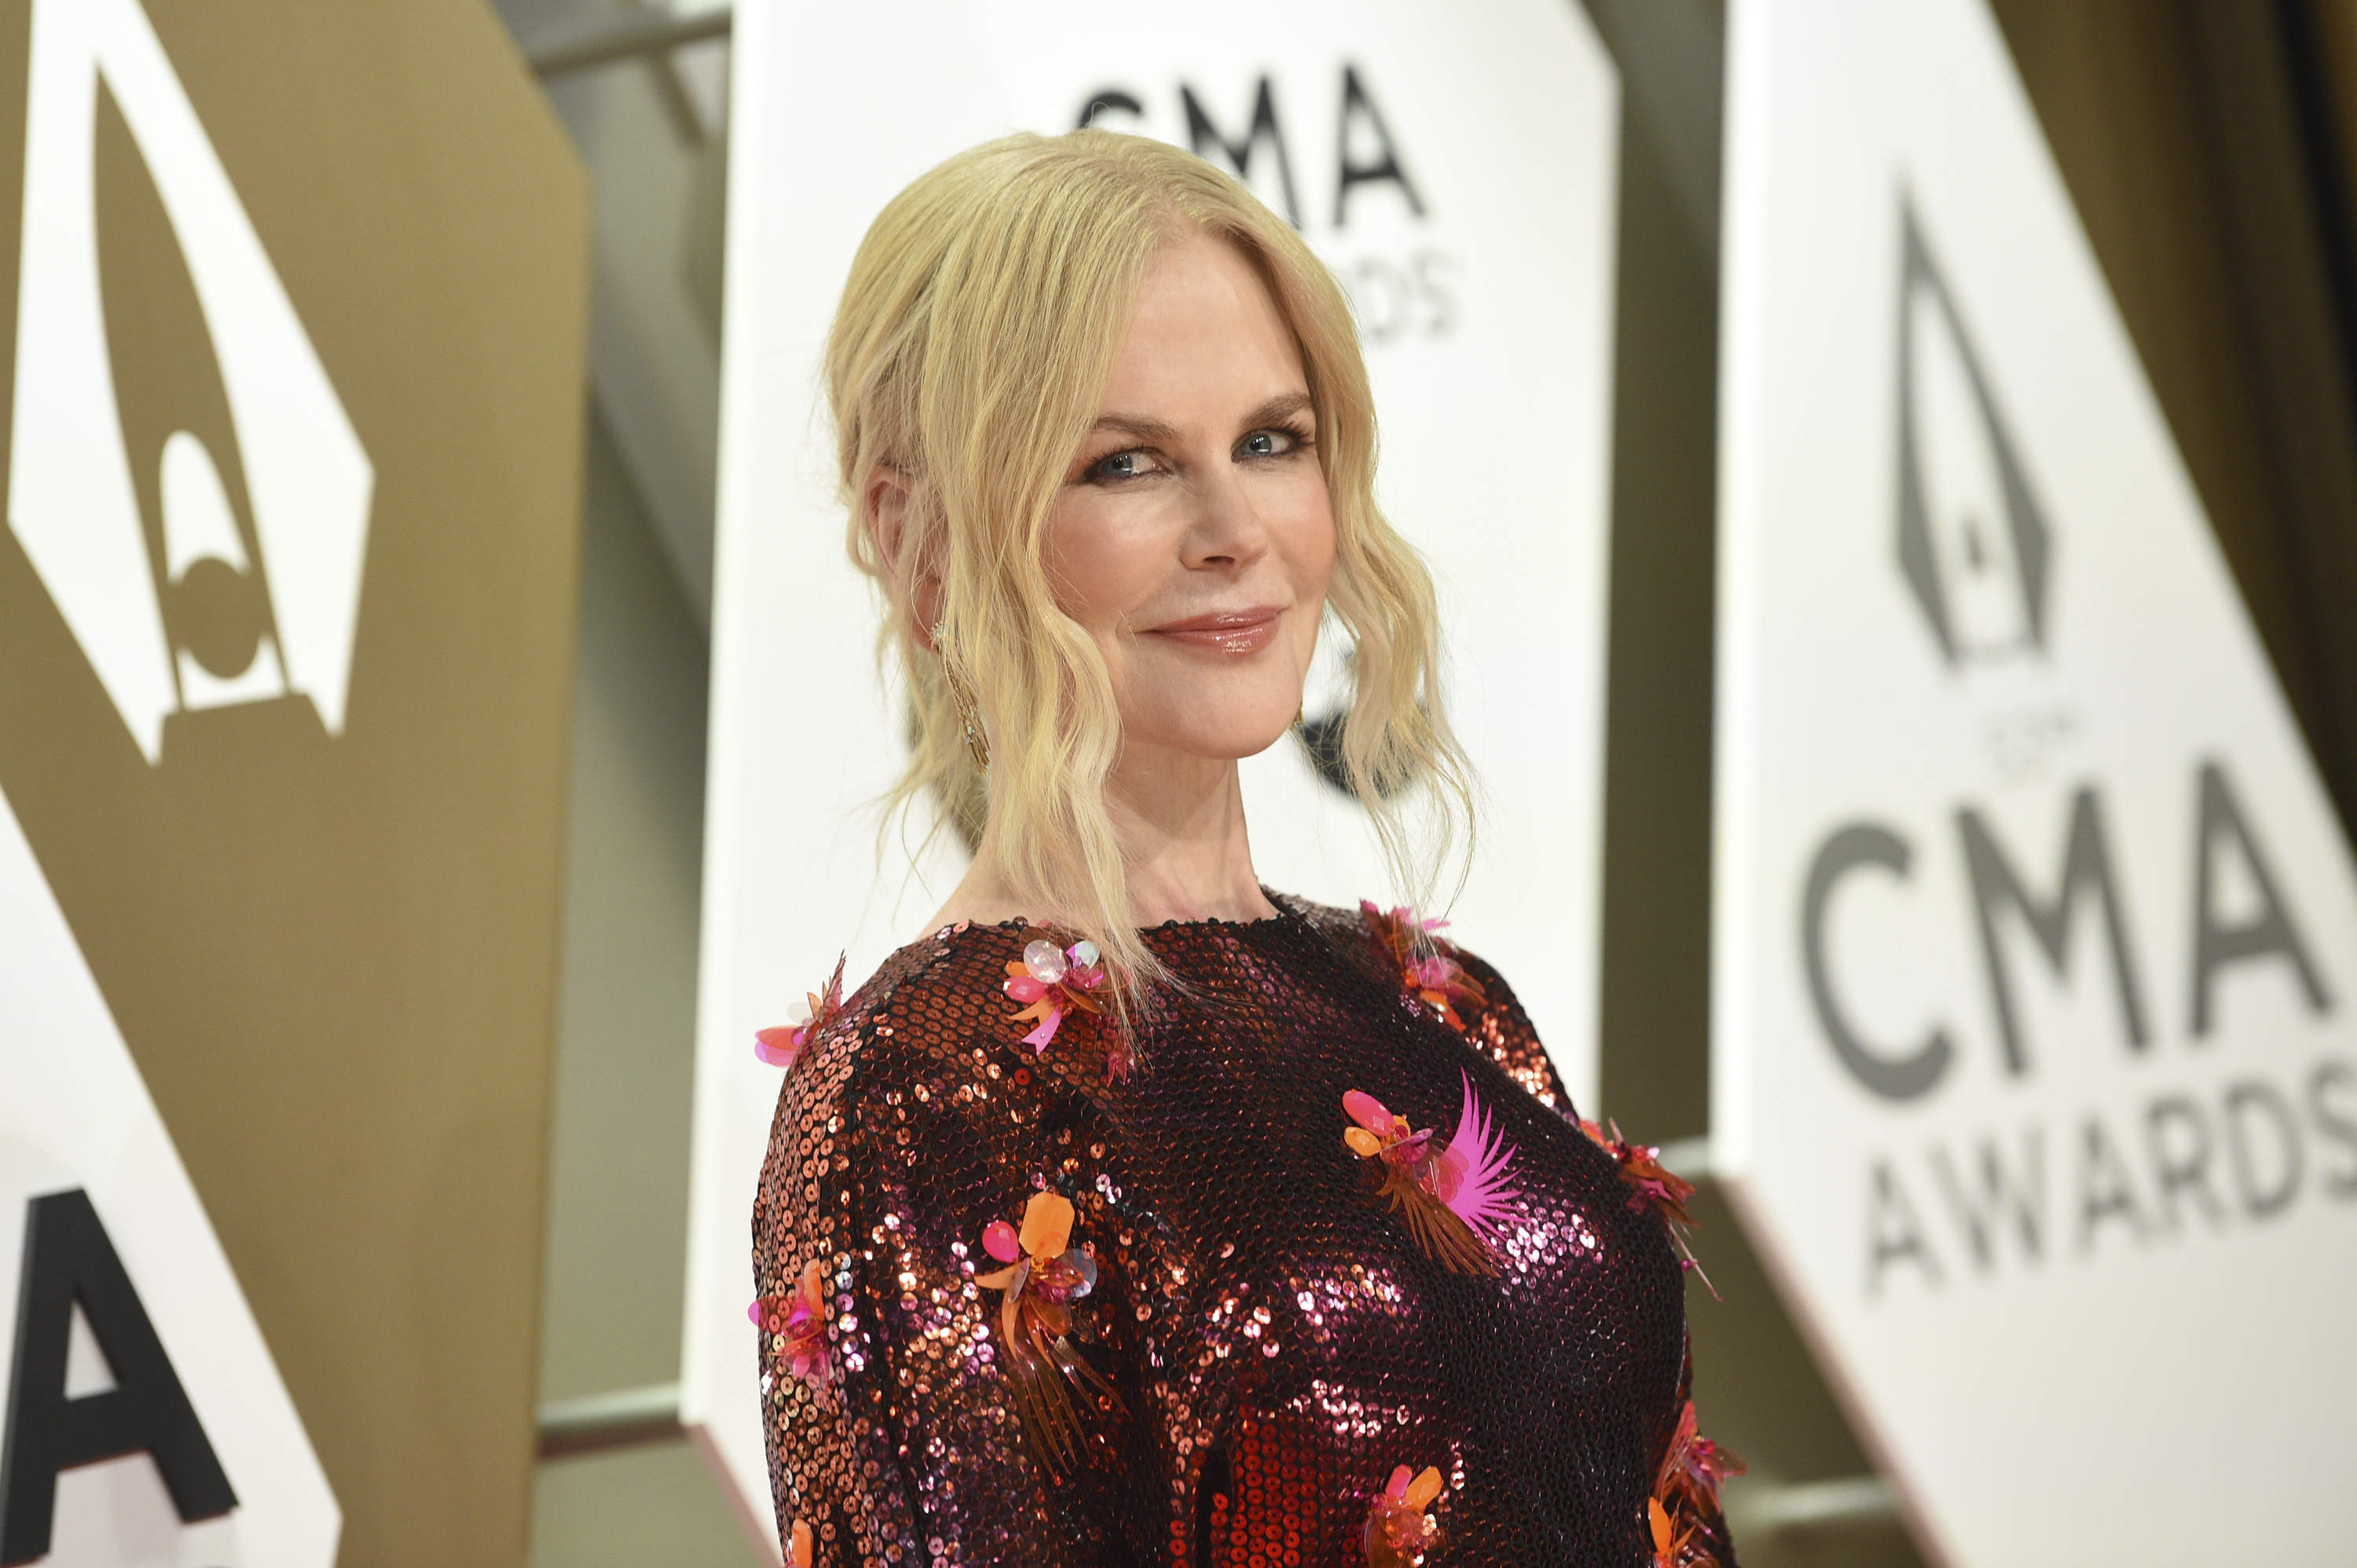 Nicole Kidman arrives at the 53rd annual CMA Awards in Nashville, Tennessee.